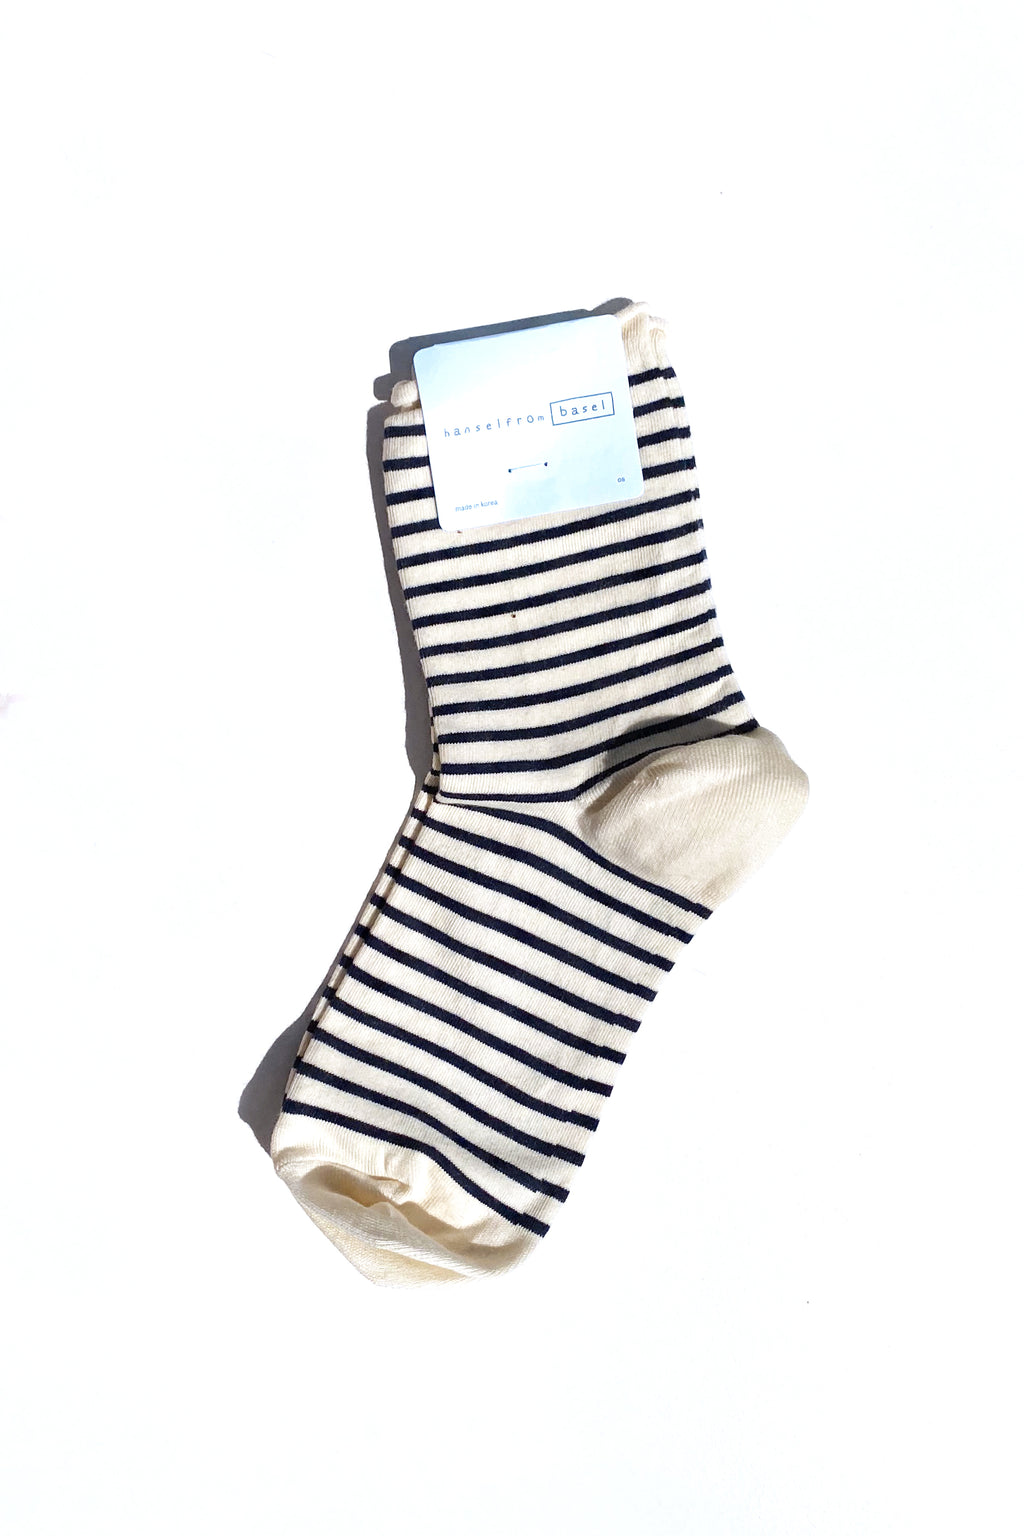 HANSEL FROM BASEL Nautical Stripe Crew Ivory/Blue